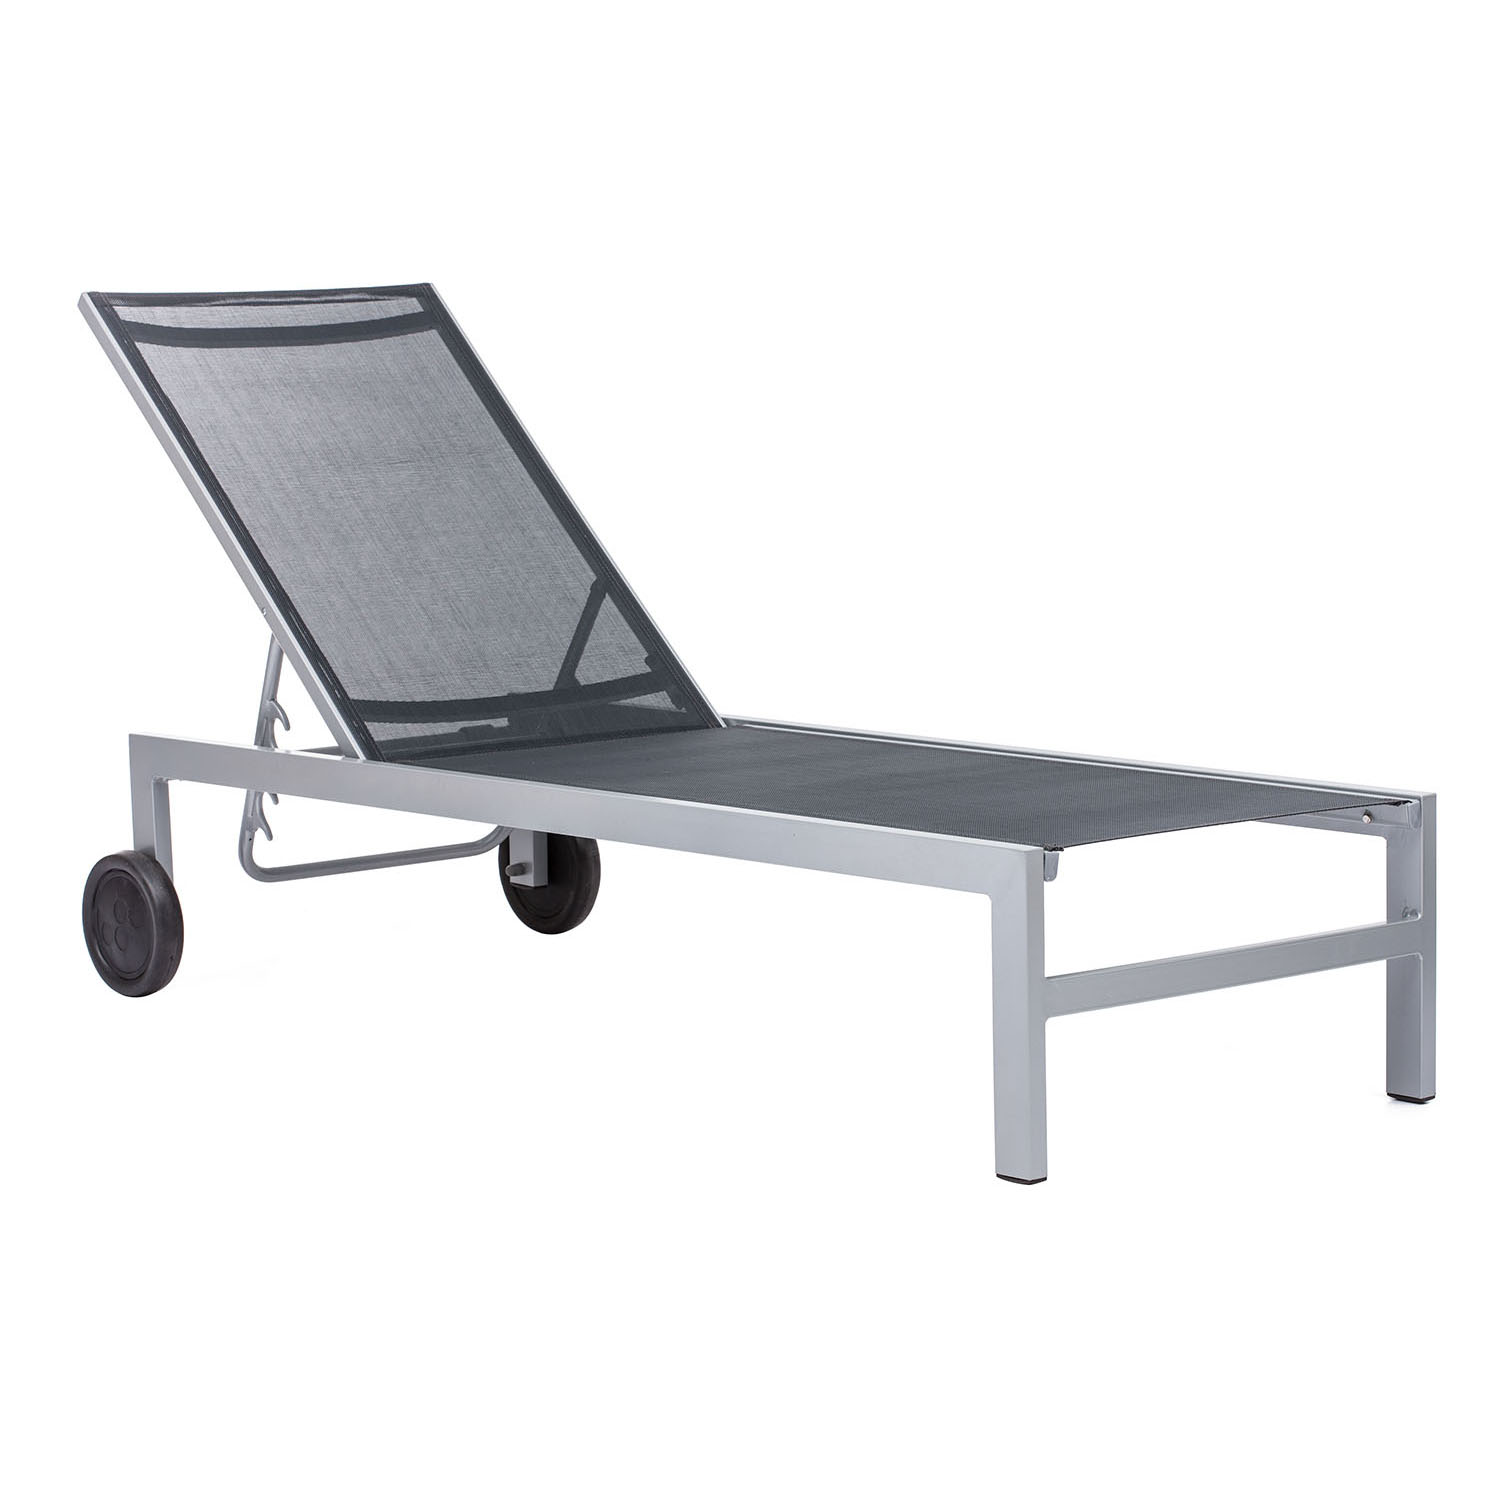 Best-selling Outdoor Castle Peak Rear Wheeled Chaise Lounge Product Photo